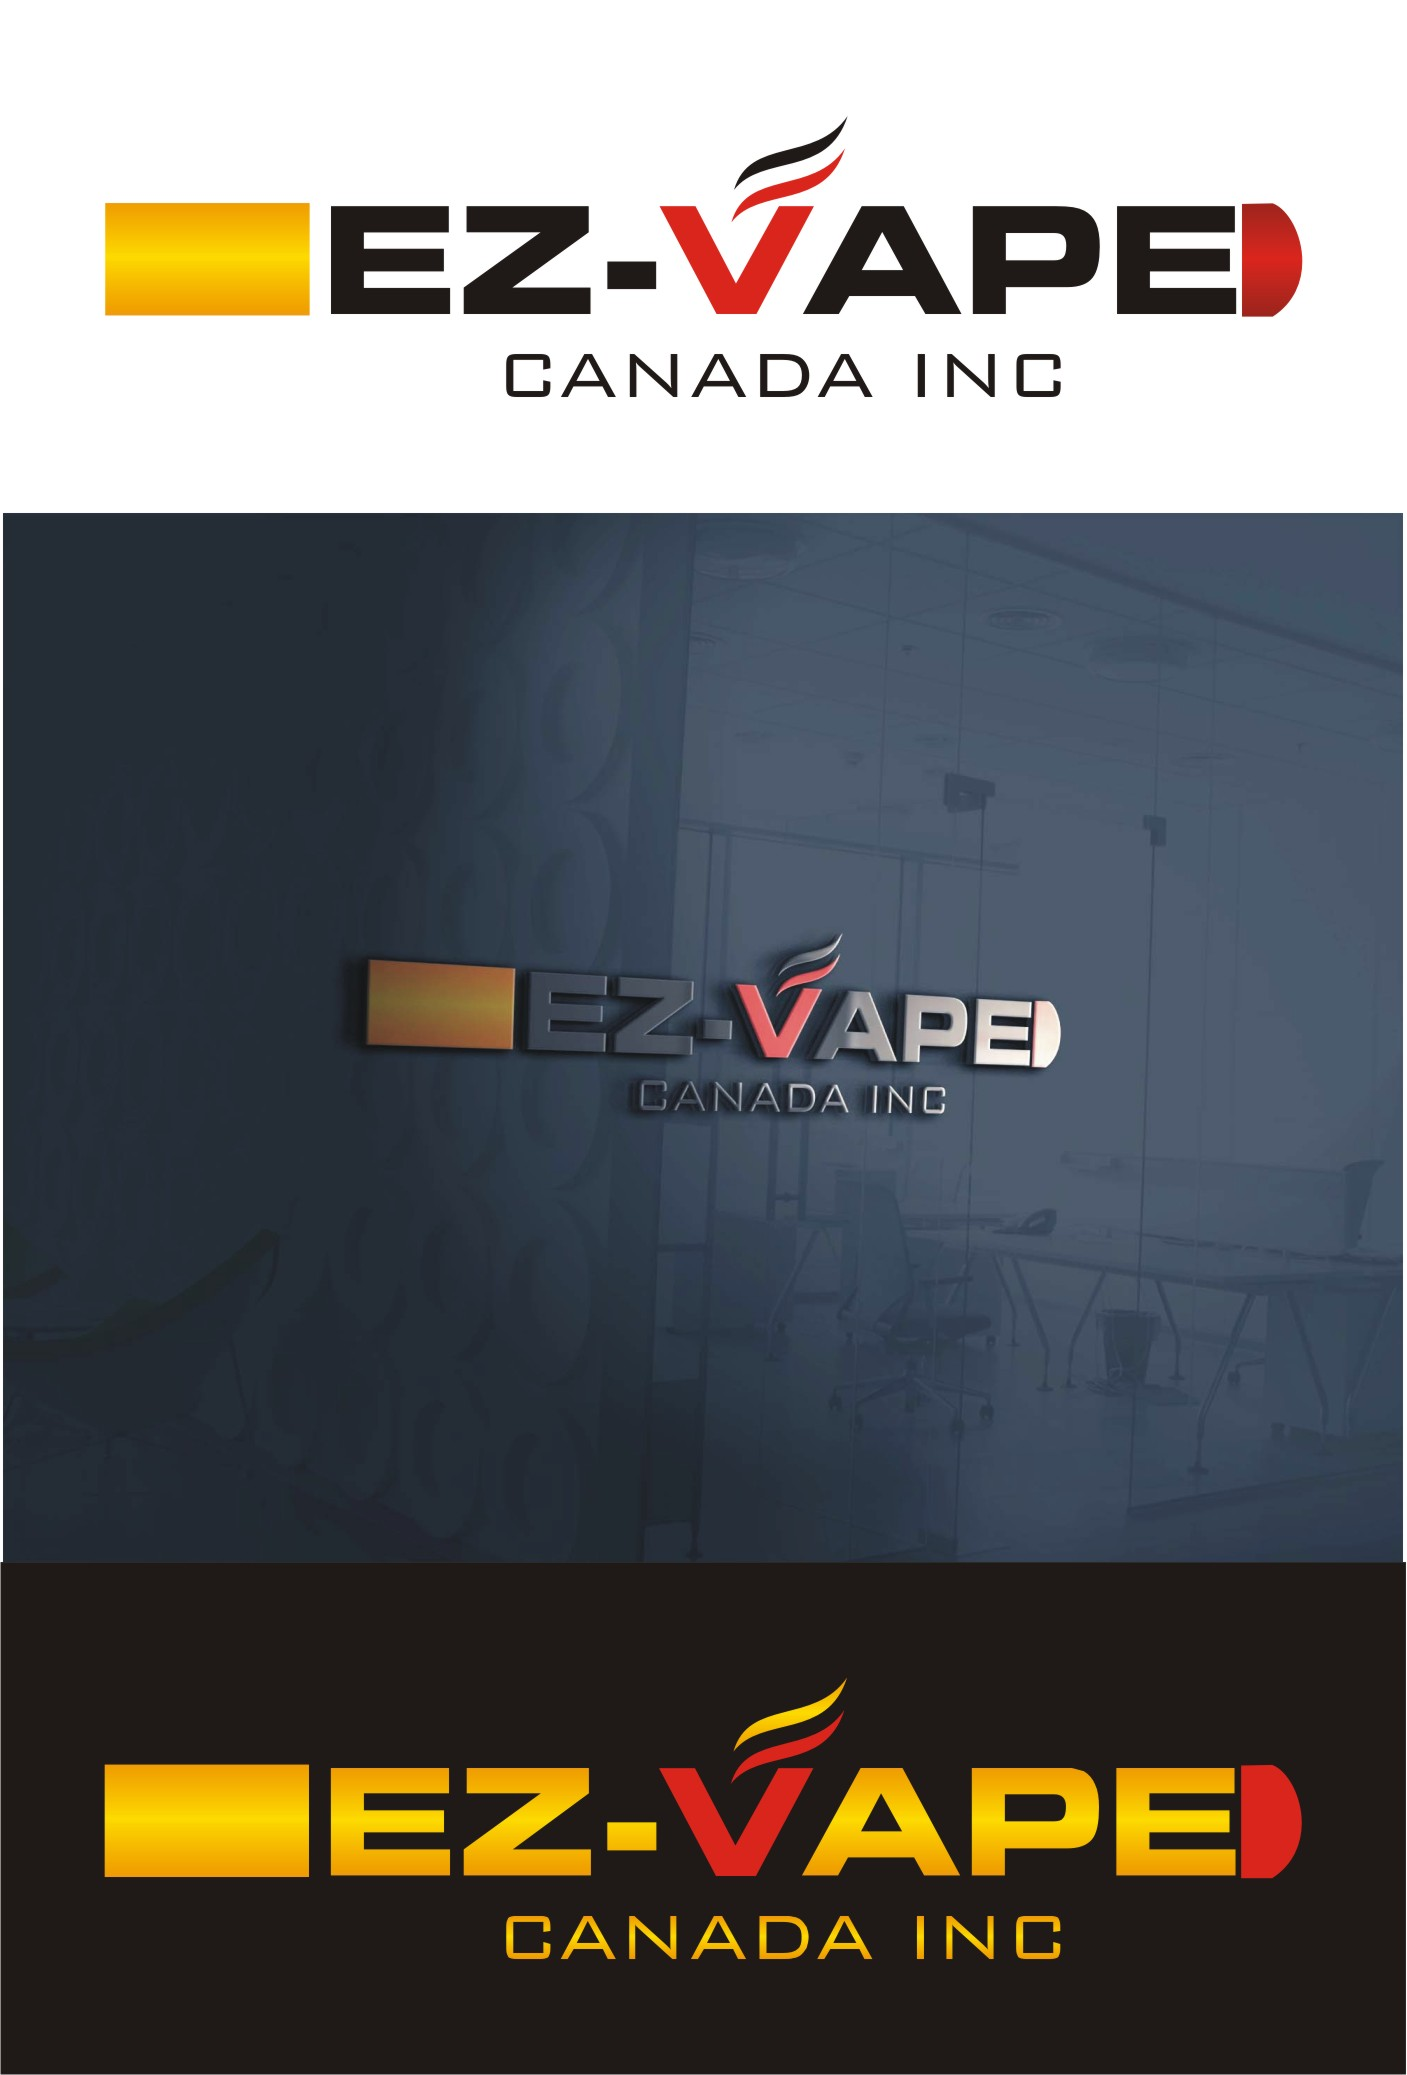 Logo Design by Spider Graphics - Entry No. 24 in the Logo Design Contest Inspiring Logo Design for EZ-Vape Canada Inc.